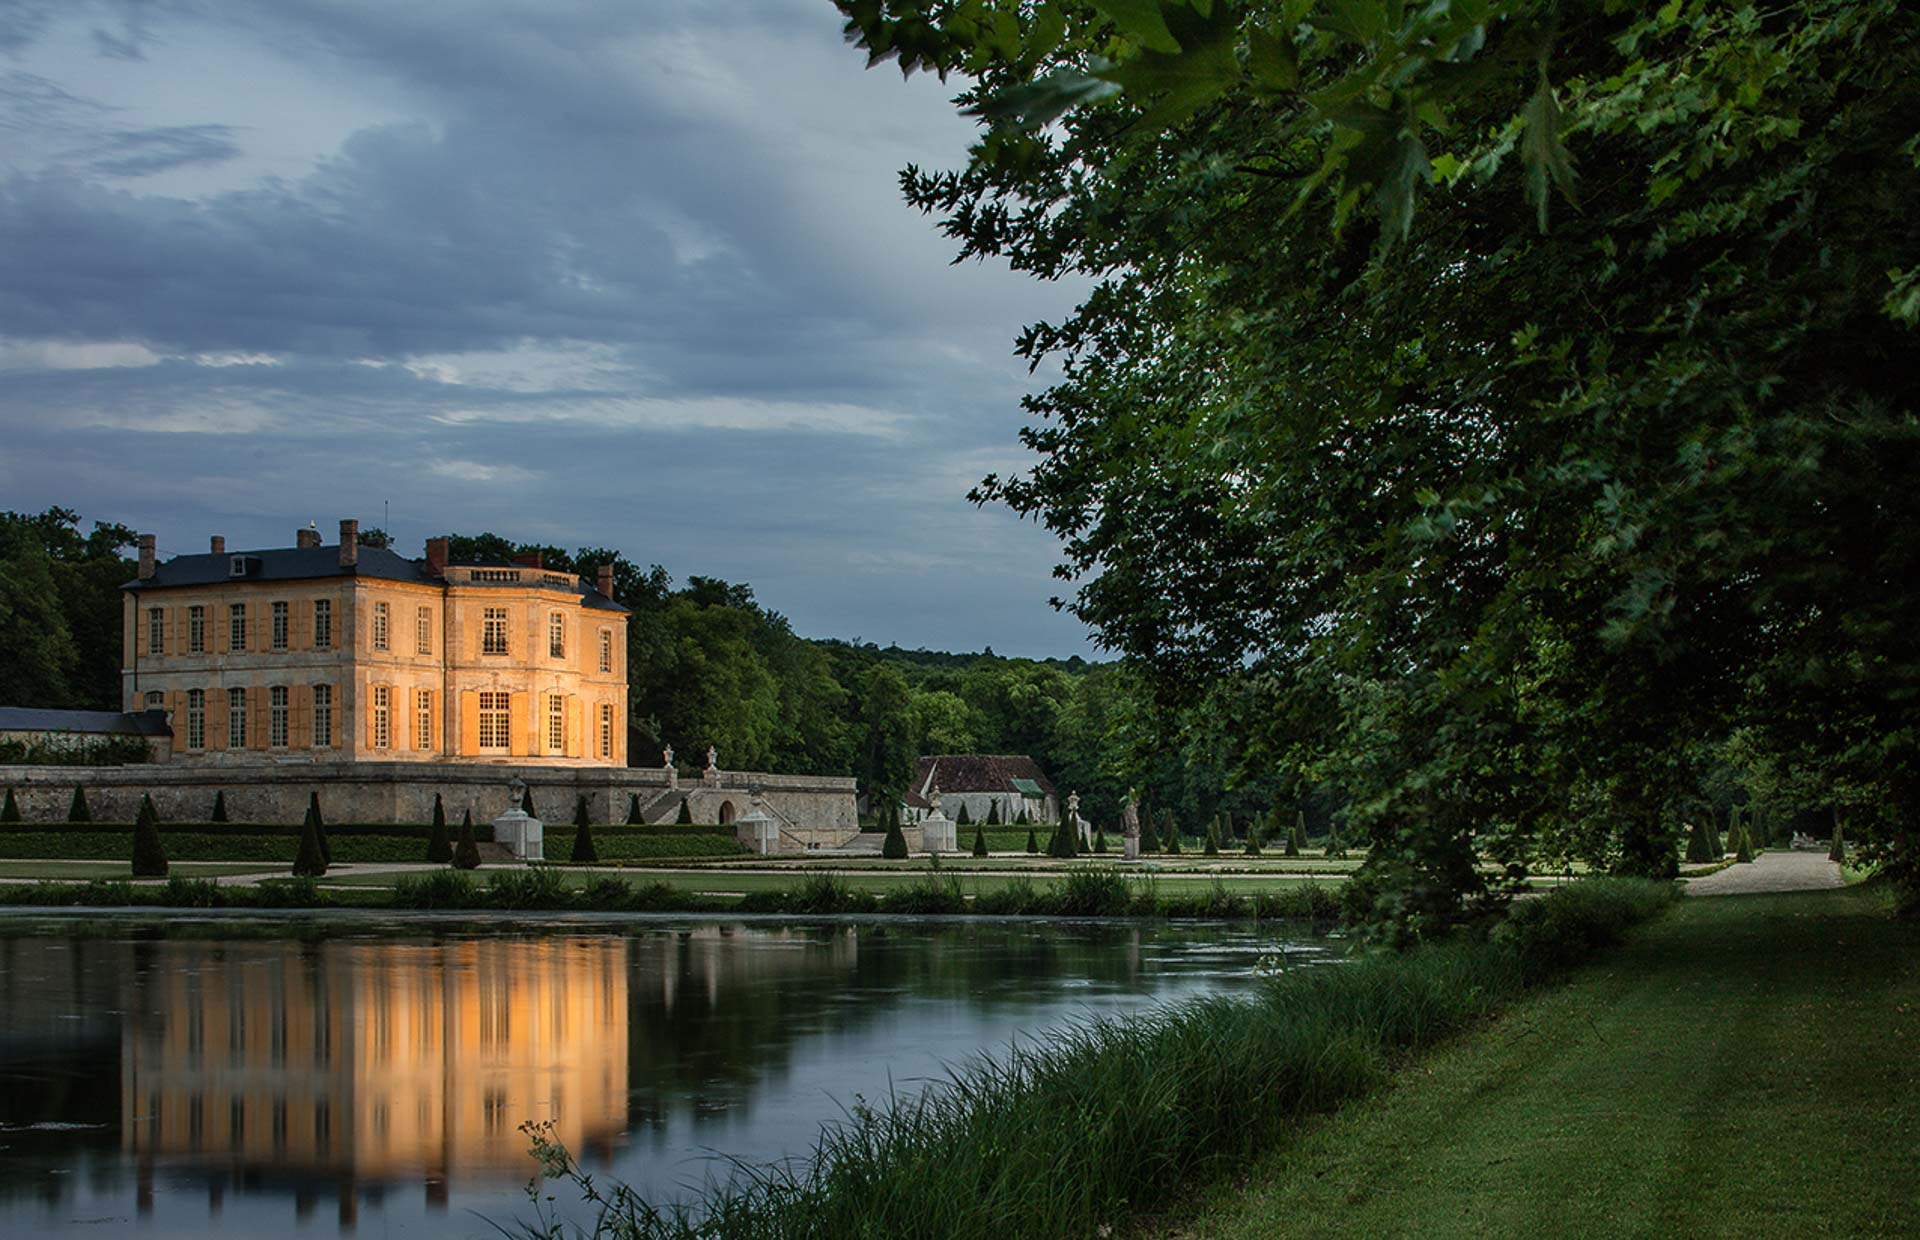 Luxury private residence Chateau Villette Paris panoramic view from lake 1